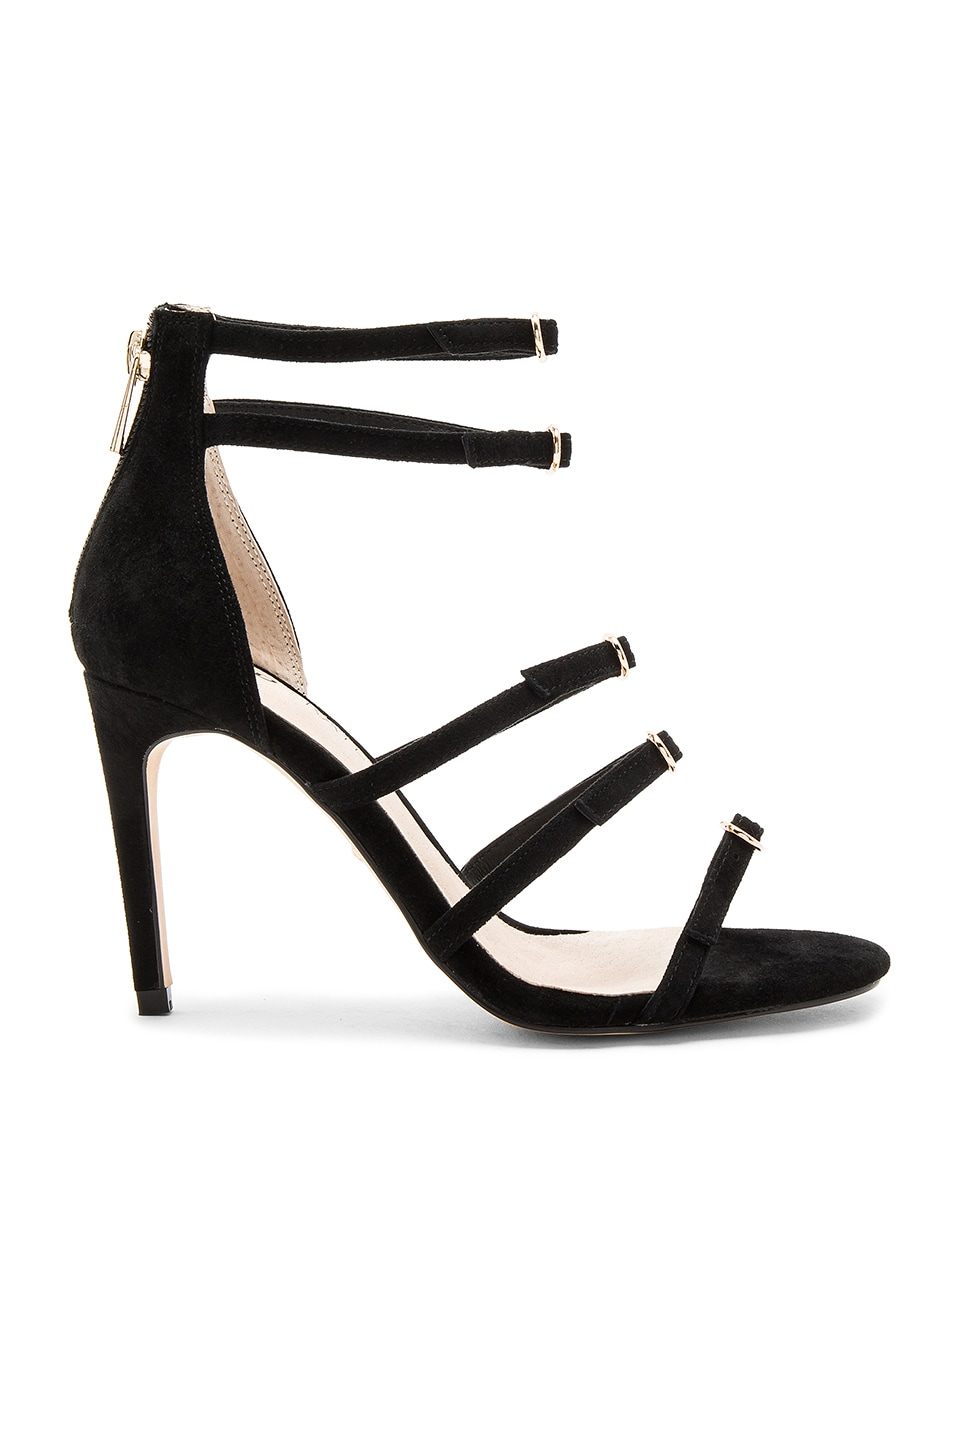 RAYE x NBD x REVOLVE Hunter Heel in Black